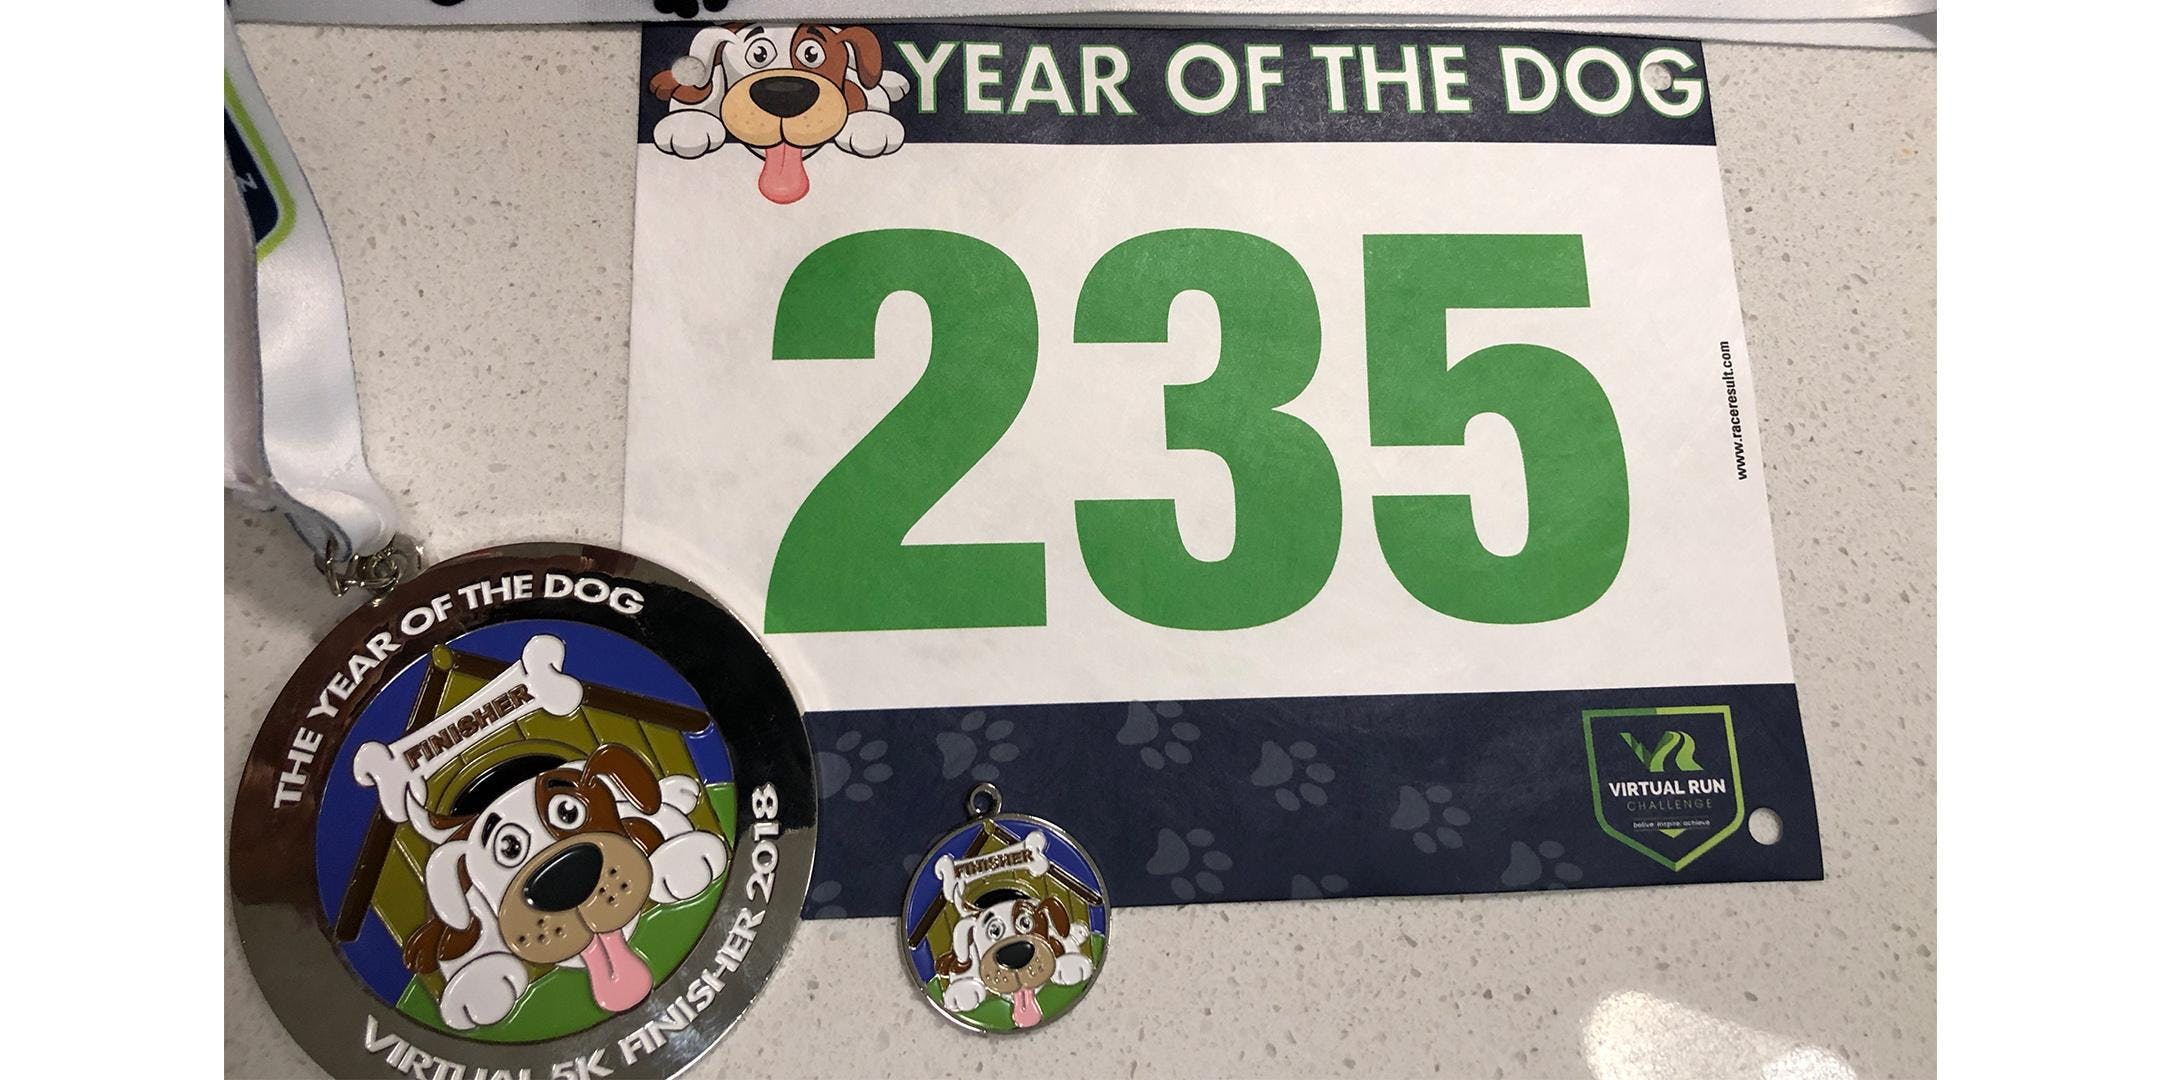 2018 Year of the Dog Virtual 5k Run/Walk - Tempe